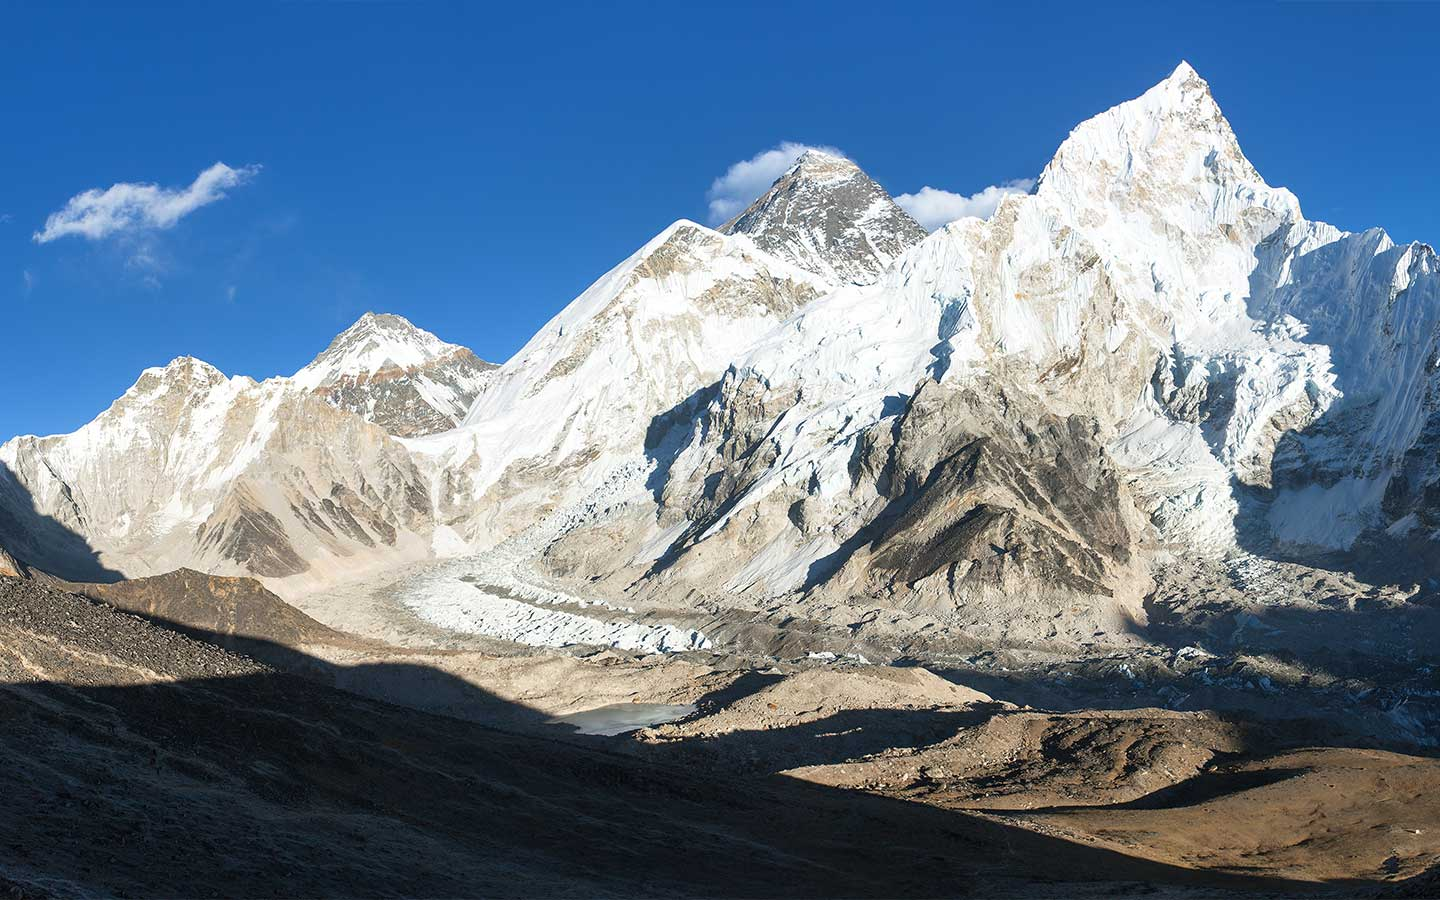 Distance From Base Camp To Everest Summit